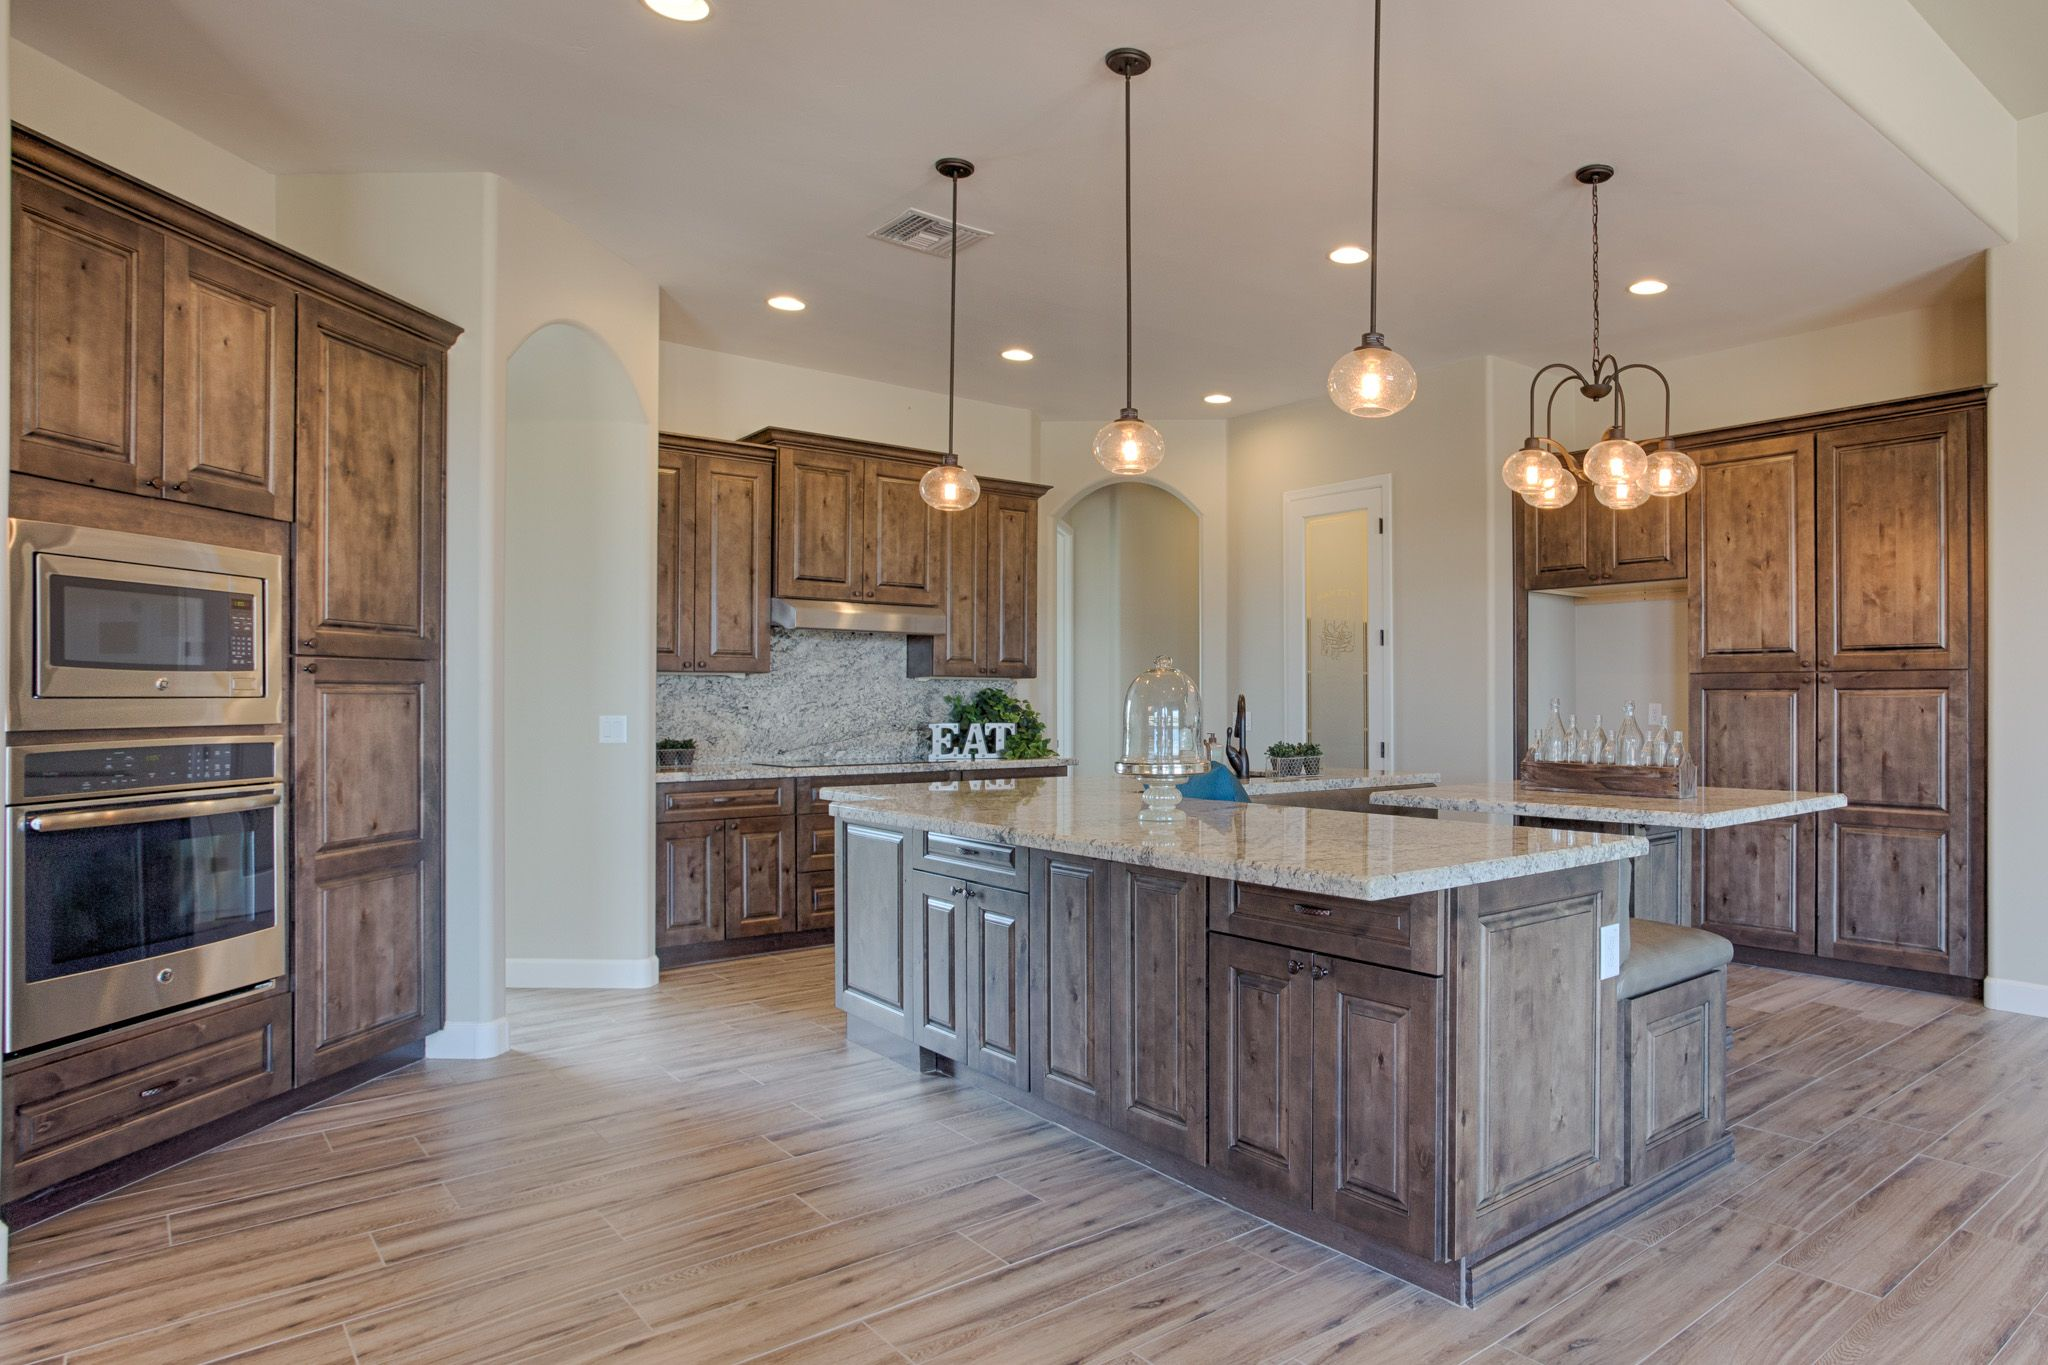 Welcome Guests Into Your Kitchen With Inviting Tahoe Ash Cabinets From Our Value Series Custom Kitchen Cabinets Ash Kitchen Cabinets Modern Farmhouse Kitchens